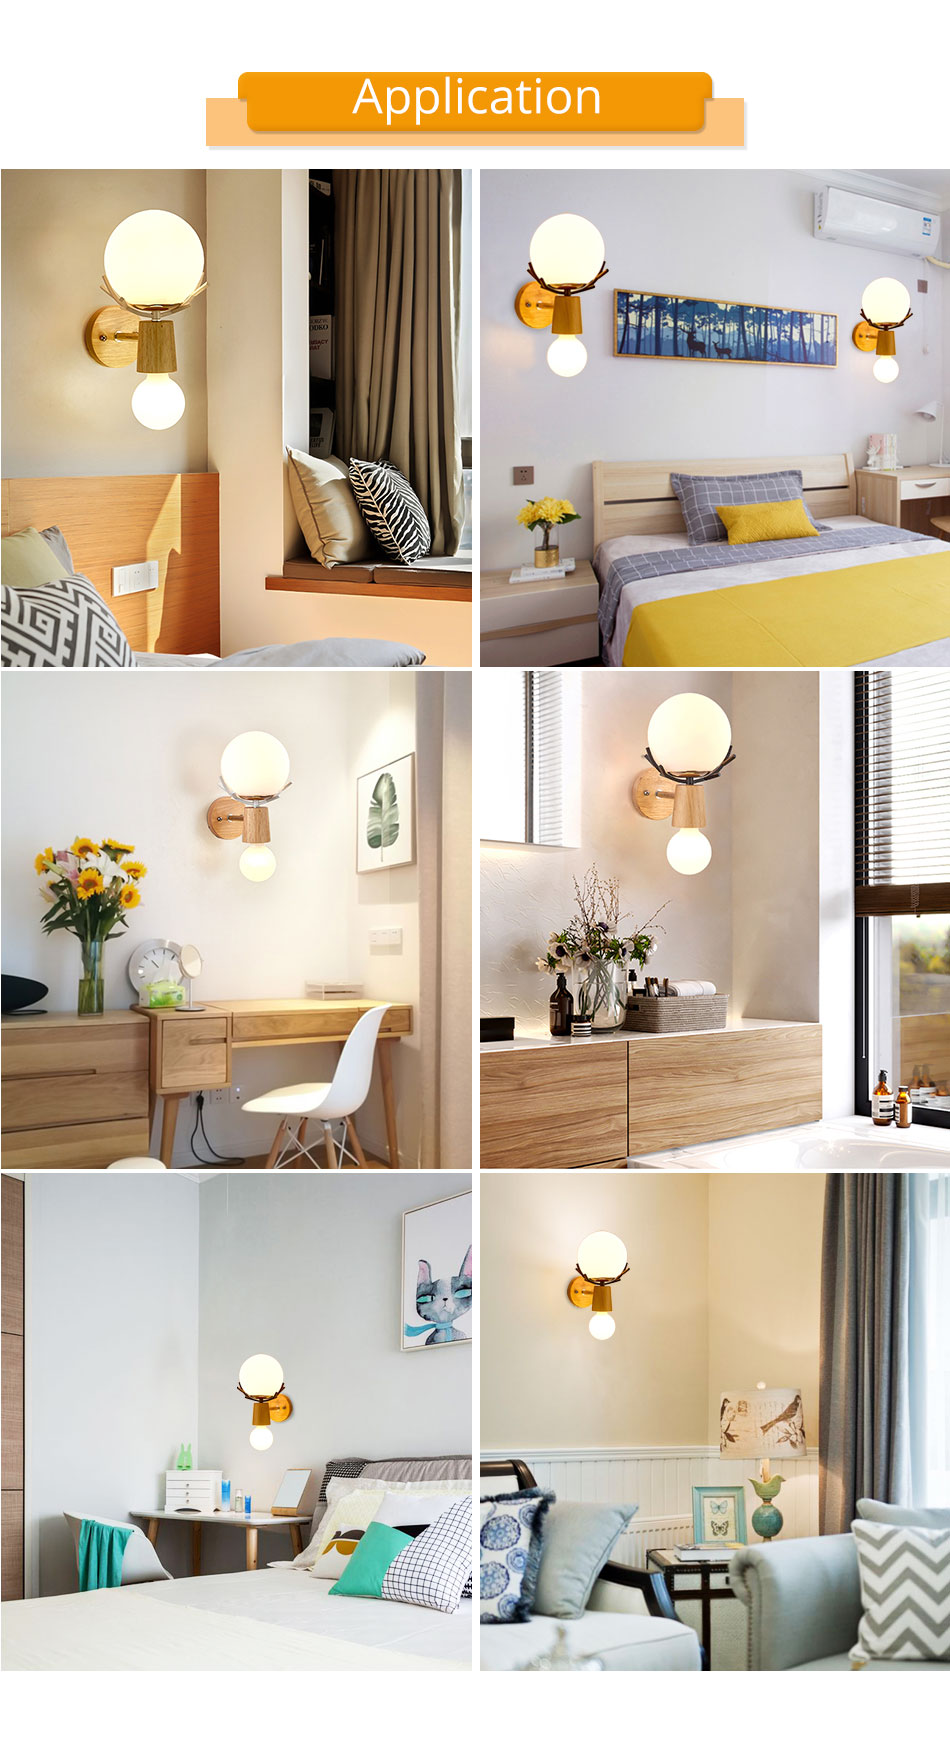 Creative LED Wall Light Sconces E27 Bulb Wood Retro Wall Lamps Hotel Home Living Room Bedroom bedside indoor lighting Fixture (9)